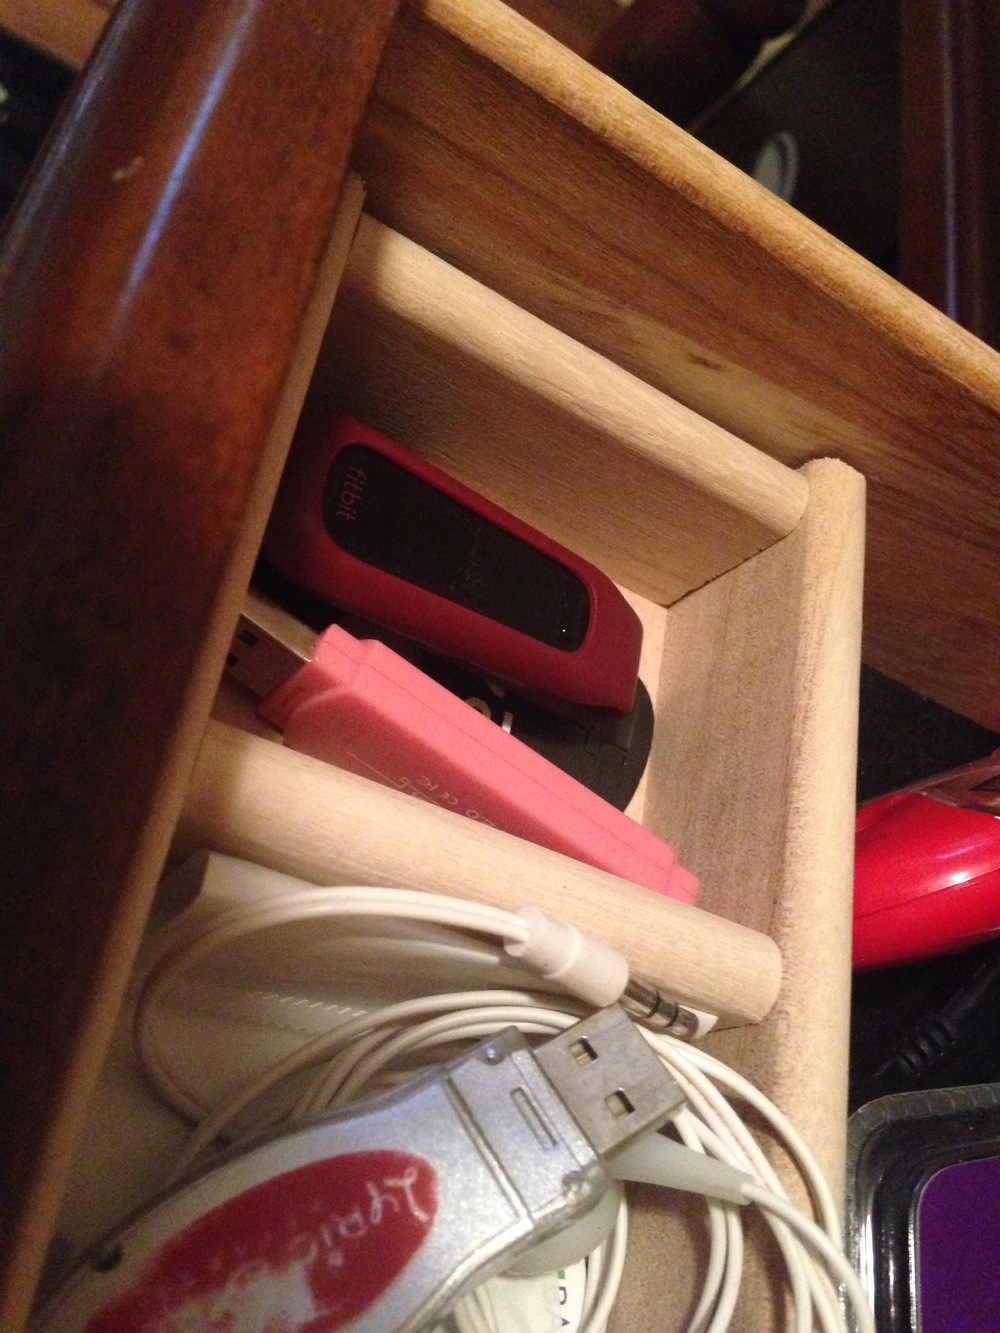 My FitBit's new home in the junk drawer where things go to die.